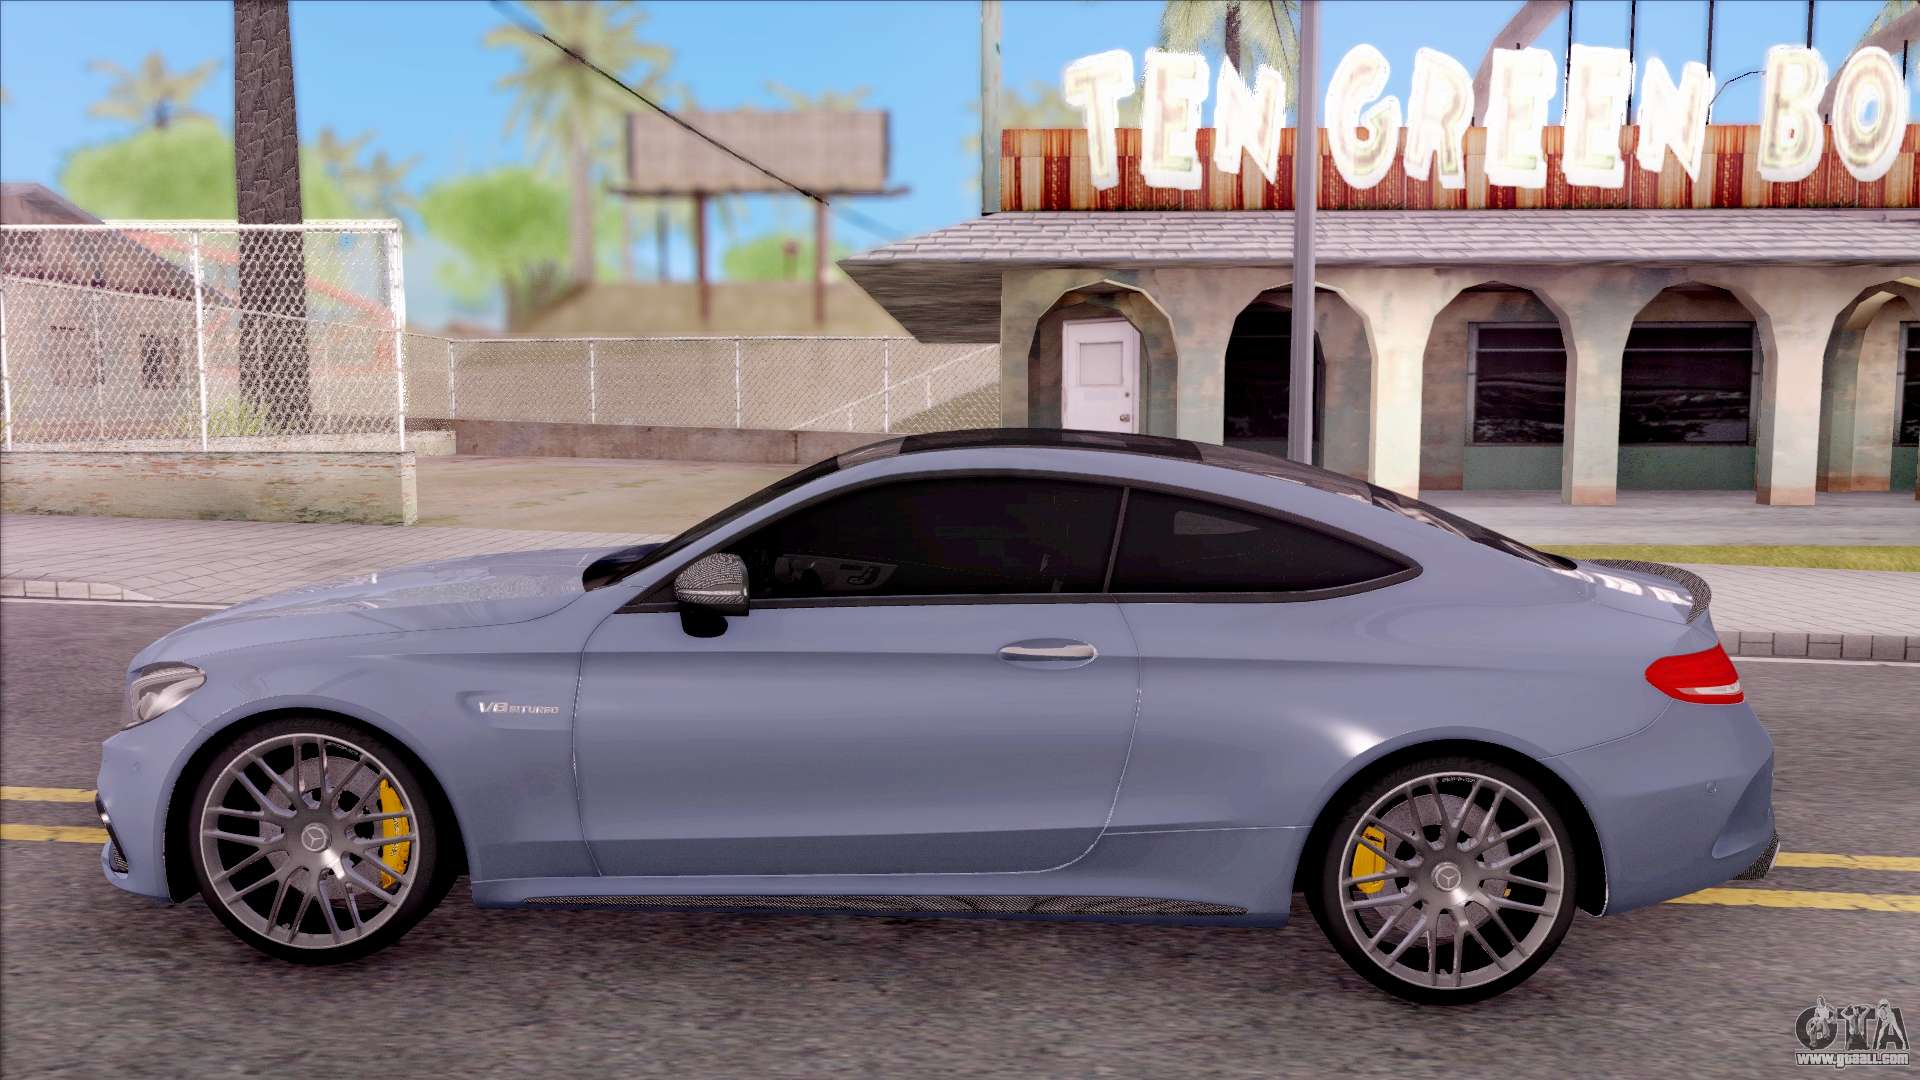 Mercedes Benz C63s Amg Coupe 2016 V2 For Gta San Andreas